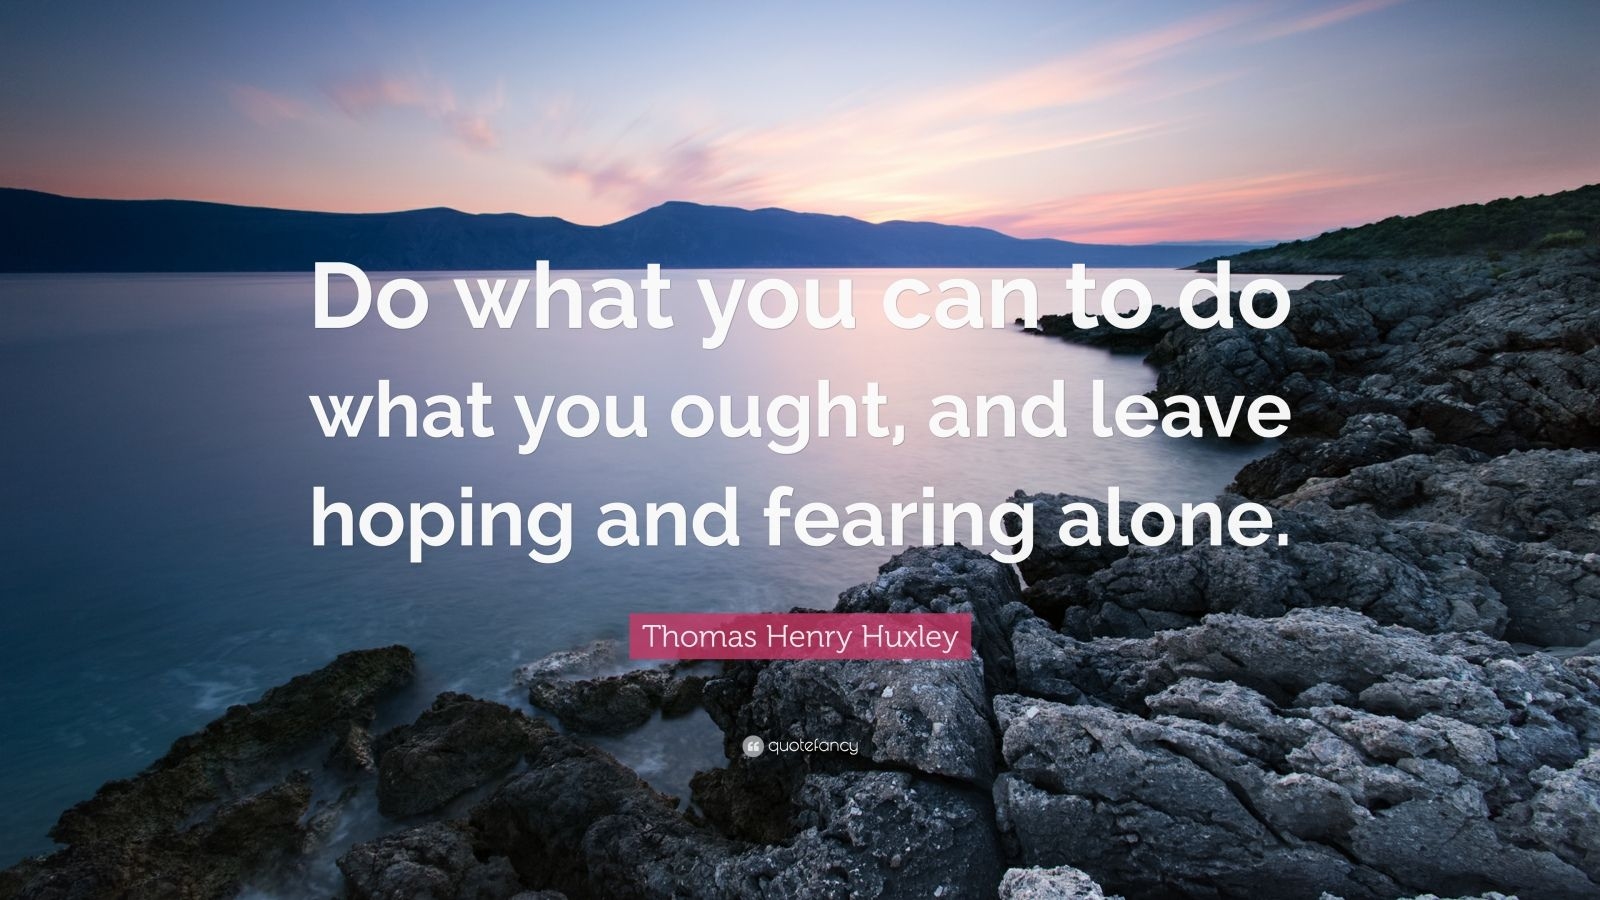 """Thomas Henry Huxley Quote: """"Do what you can to do what you ought, and leave hoping and fearing alone."""""""